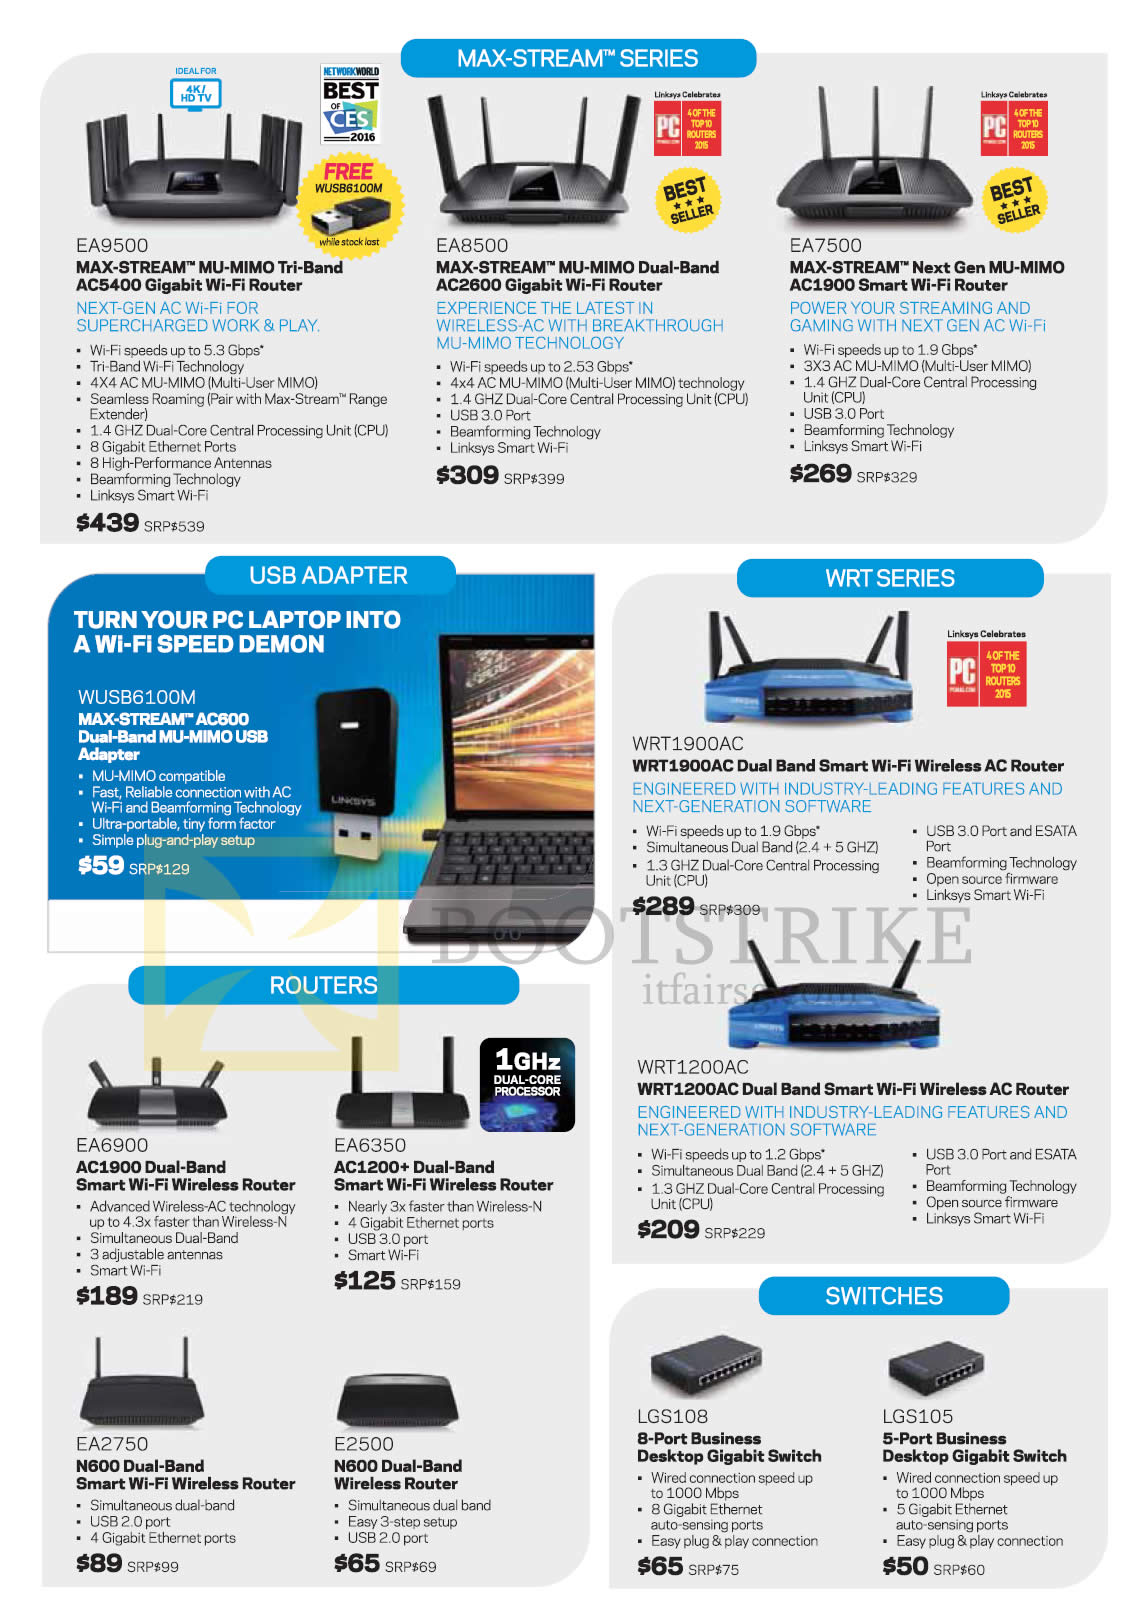 COMEX 2016 price list image brochure of Linksys Wi-Fi Wireless Routers, AC Routers, Gigabit Switches, USB Adapter, EA9500, EA8500, EA7500, WUSB6100M, WRT1900AC, WRT1200AC, EA6900, EA6350, EA2750